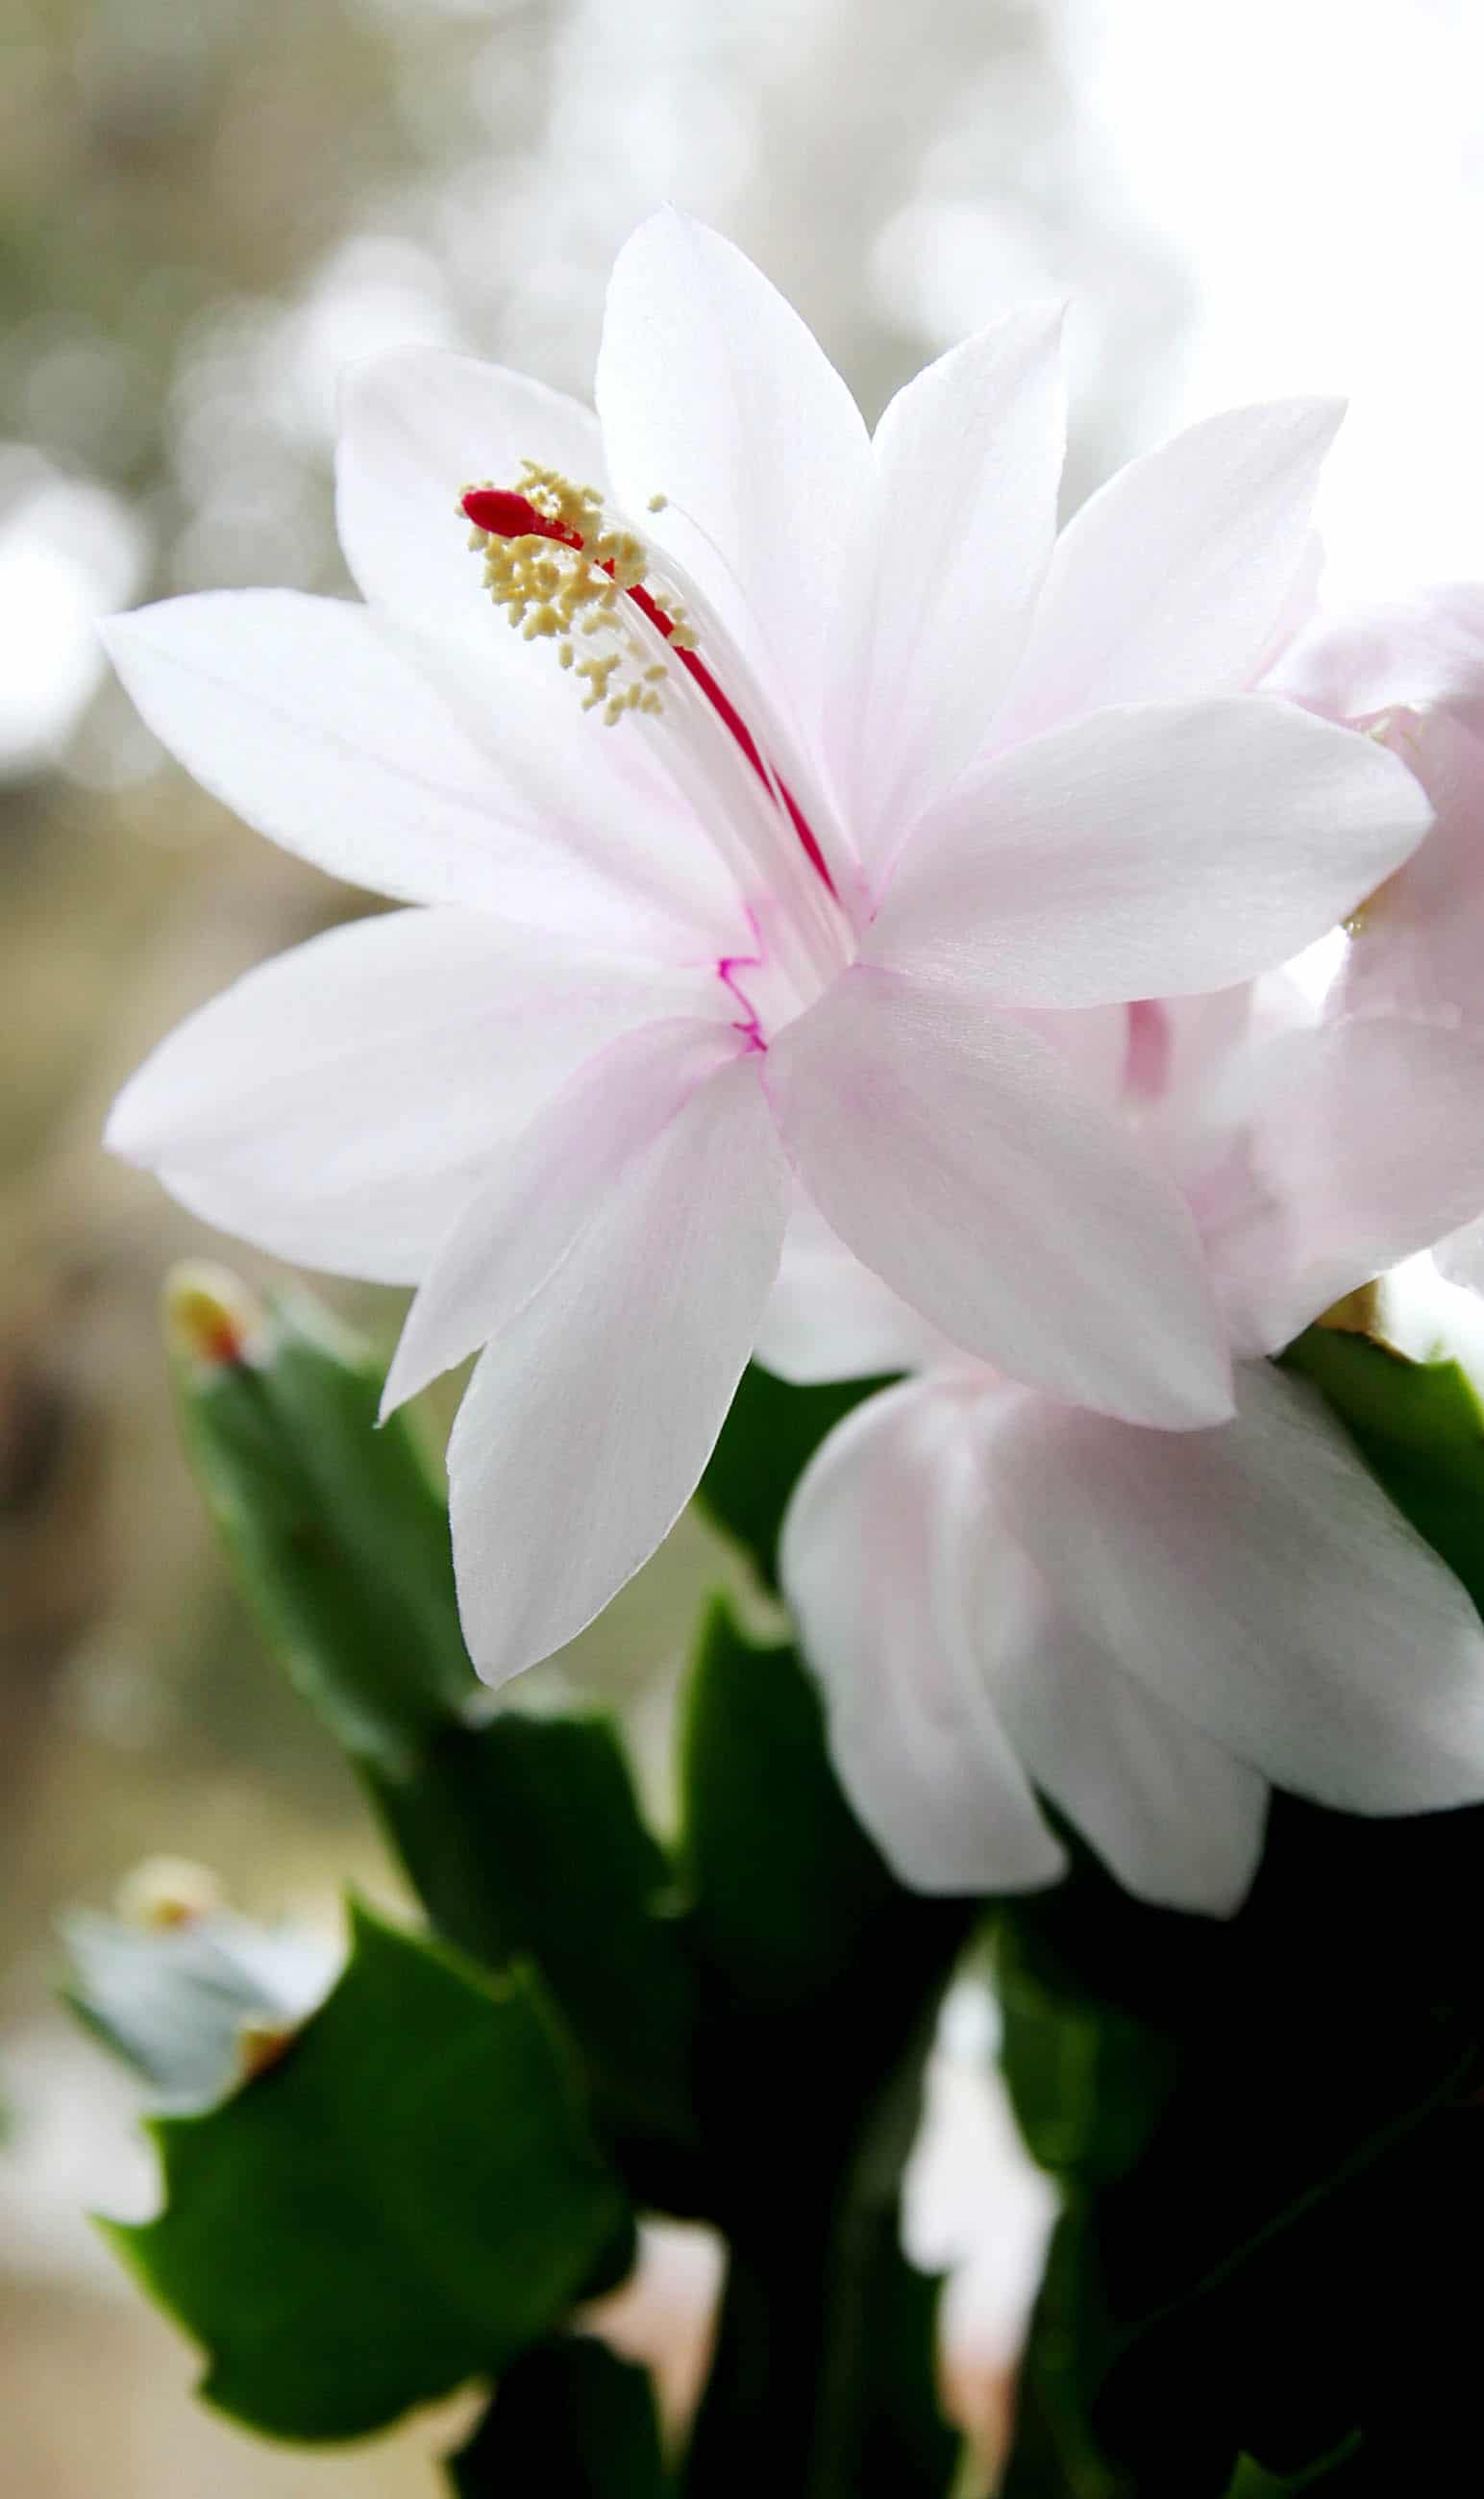 Christmas cactus flower and buds. Photo by Brendan Adam-Zwelling